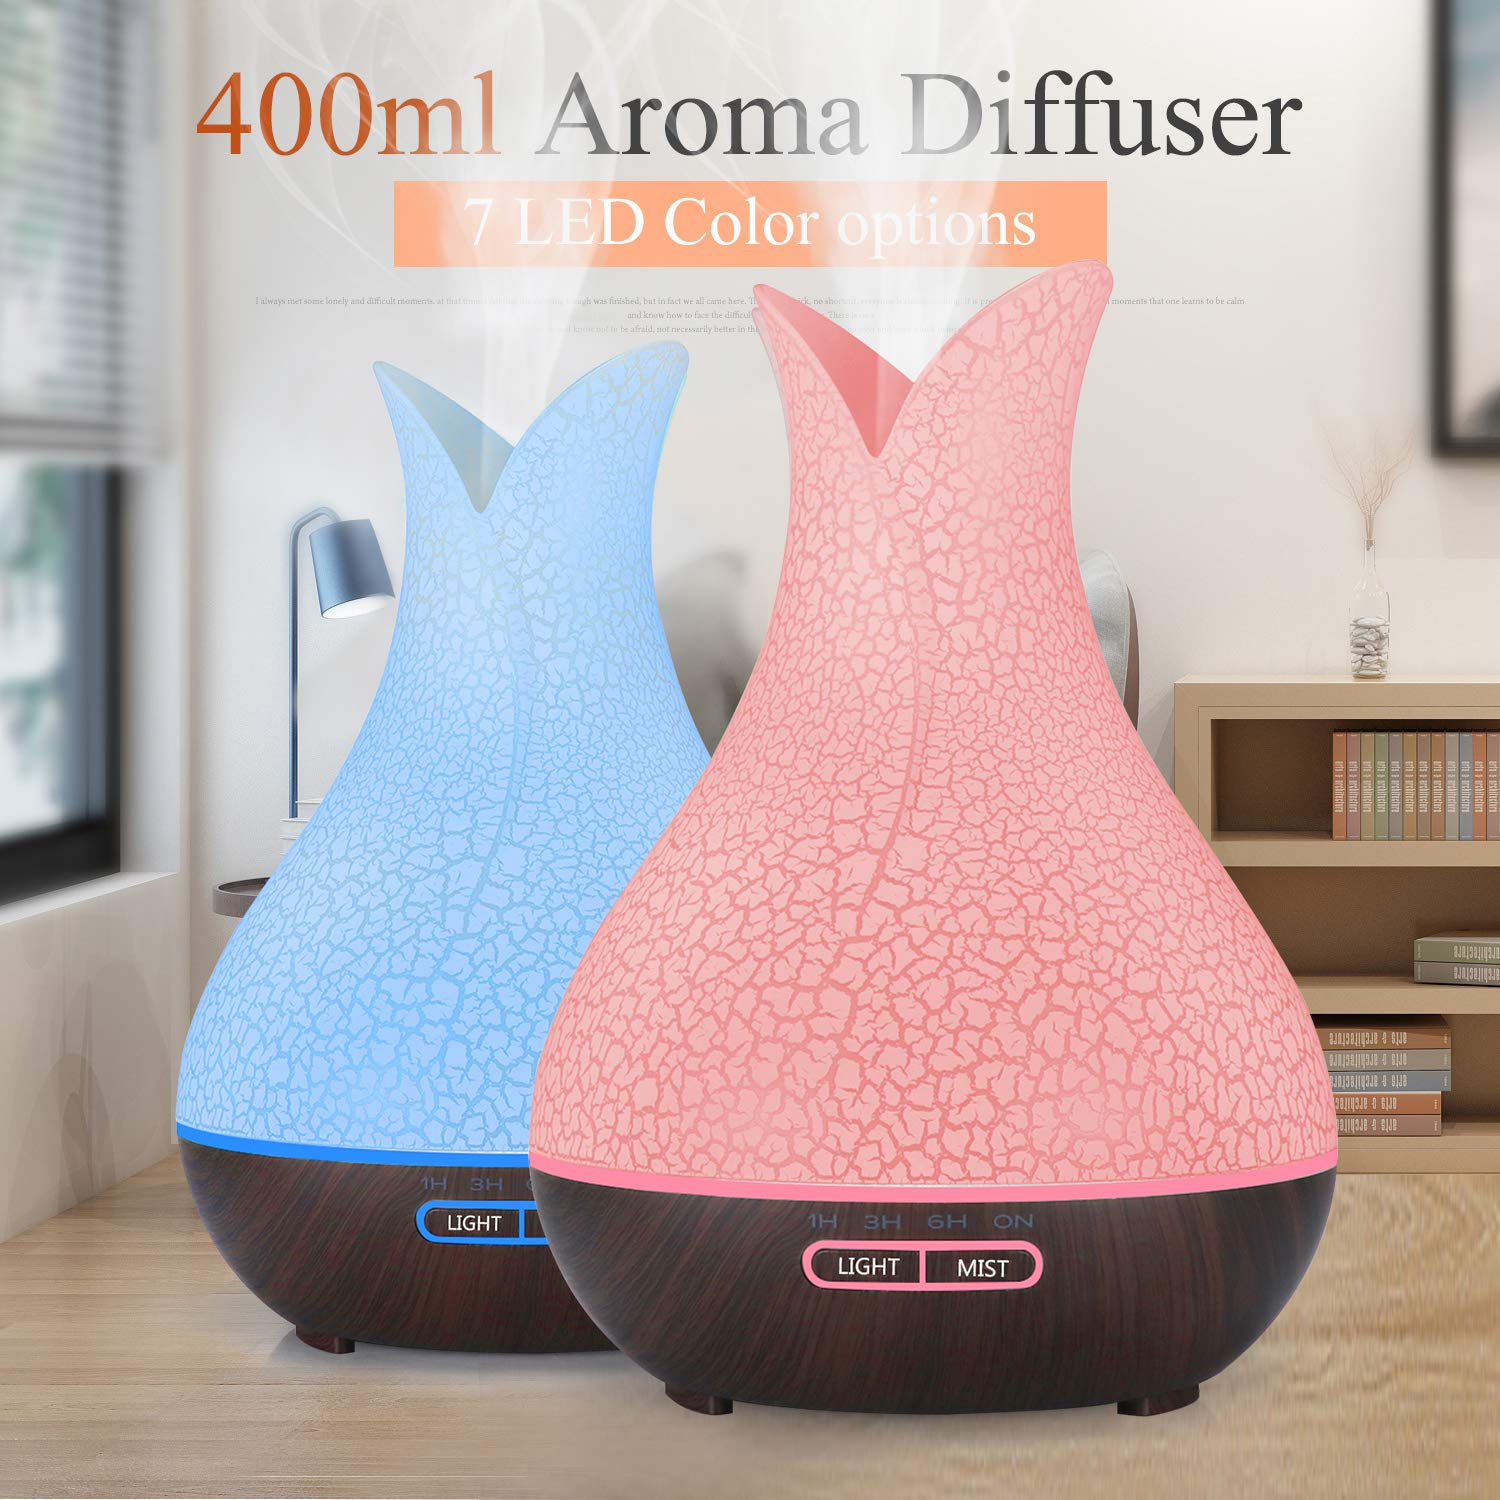 Last on A Full Day or Night TOMNEW 400ML Essential Oil Diffuser Ultrasonic Aromatherapy Air Humidifier Wood Grain Cool Mist Aroma Diffuser Large for Home Office Spa Baby Kids Room x-black-base